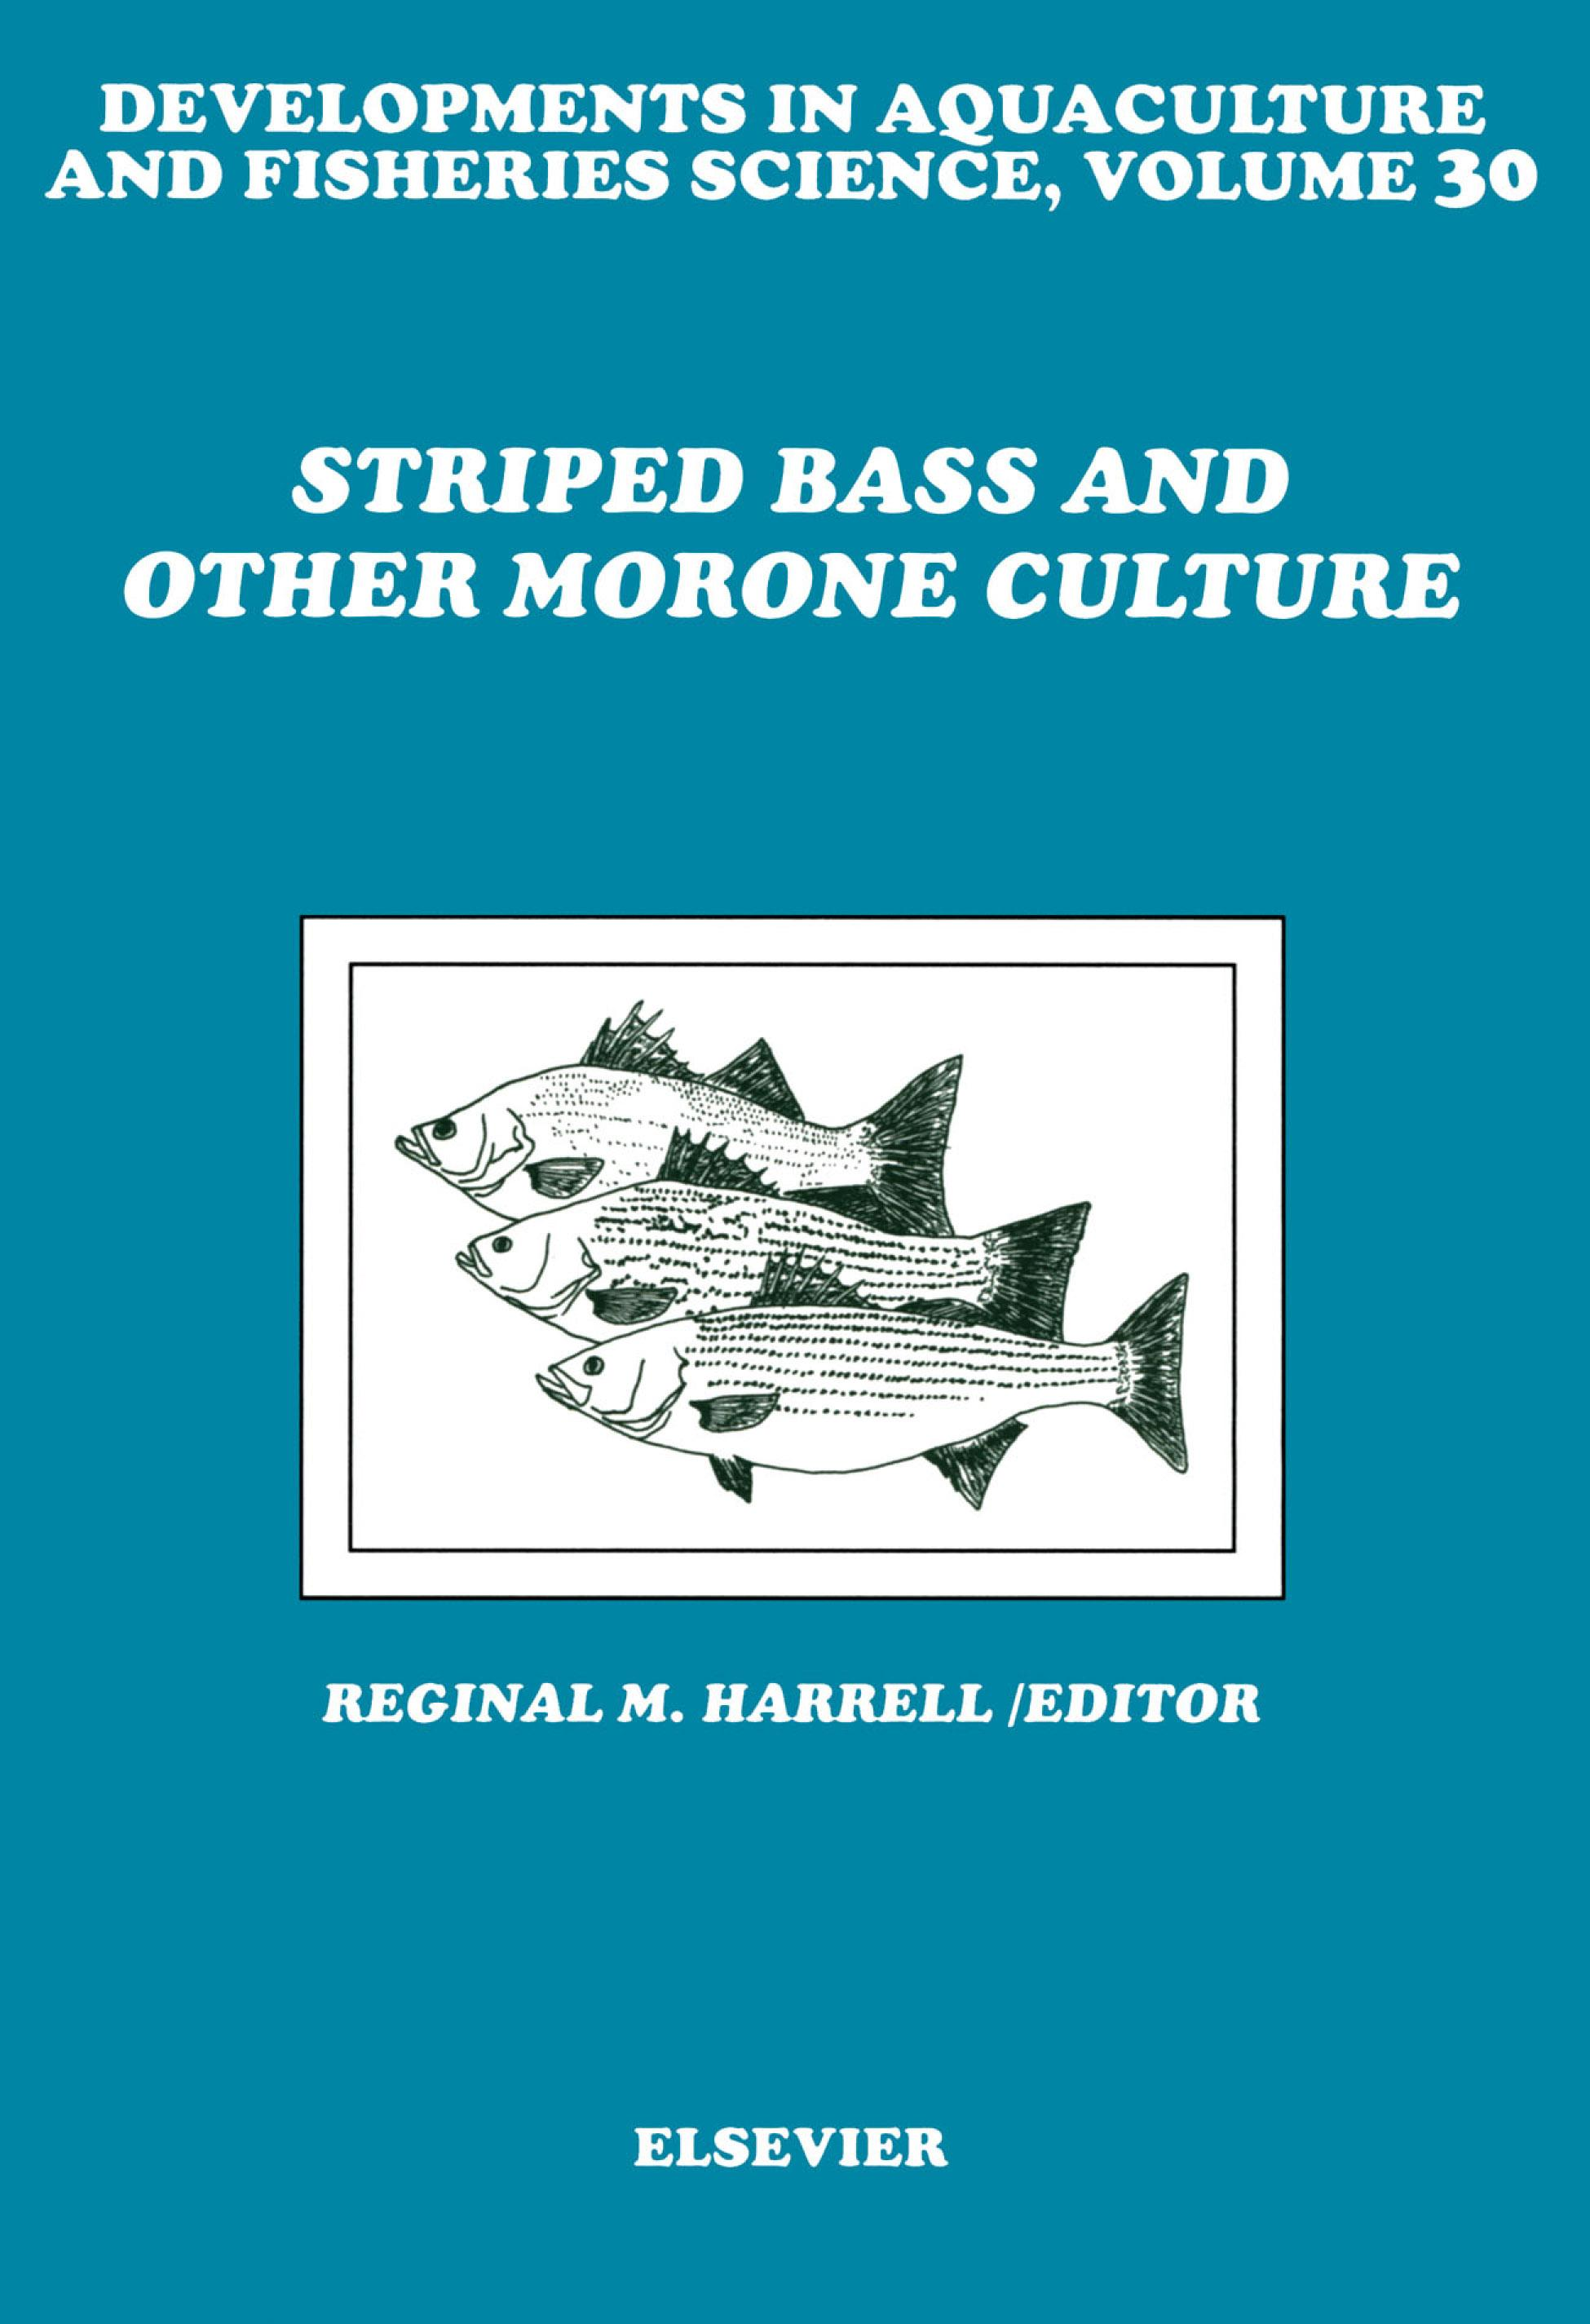 Striped Bass and Other Morone Culture